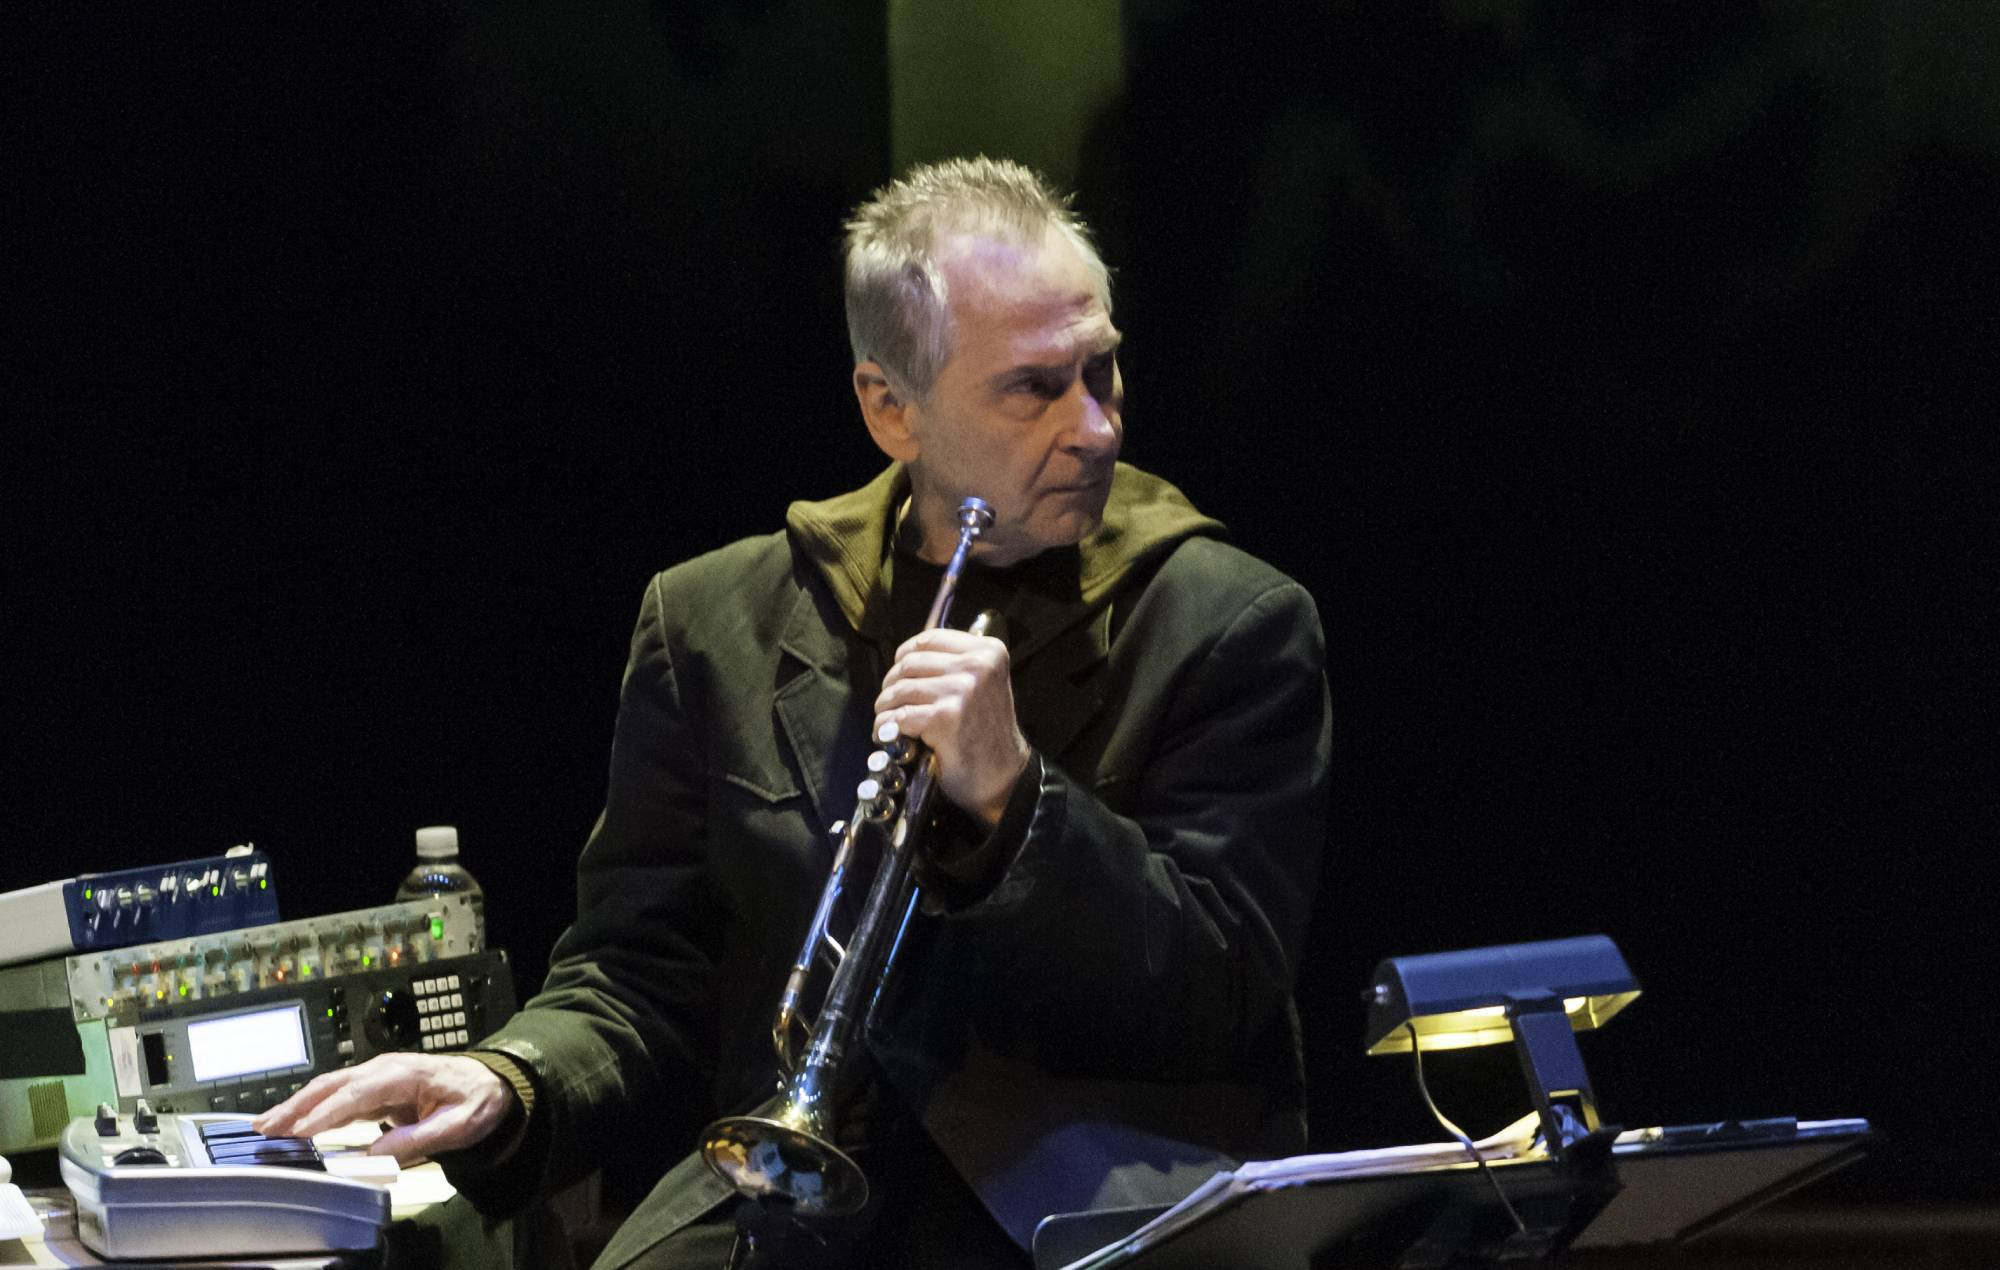 Avant-garde composer Jon Hassell has died aged 84